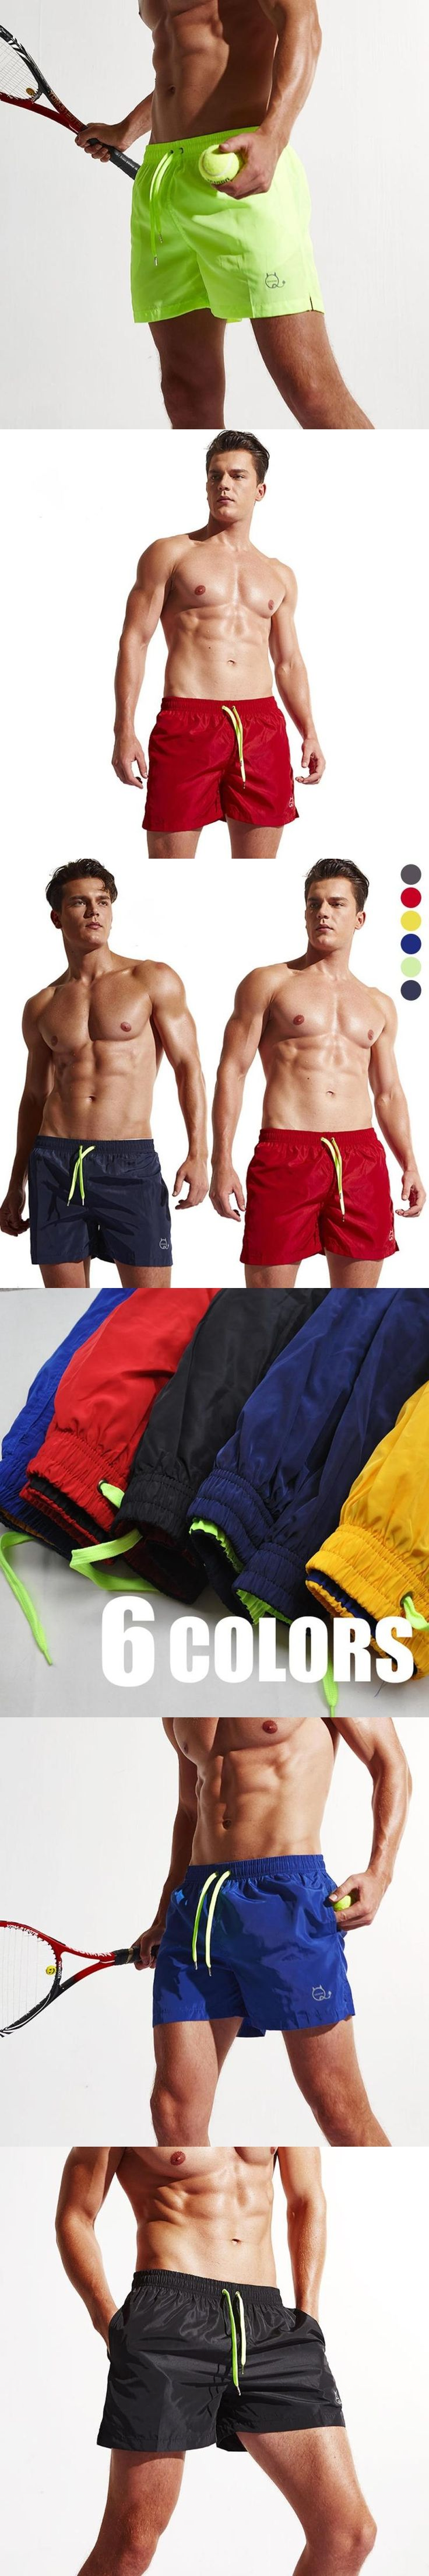 Summer Shorts Men Casual Drawstring Ultrathin Thigh Length Beach Holiday Candy Color Fashionable Male Short Leisure Trouser Y1